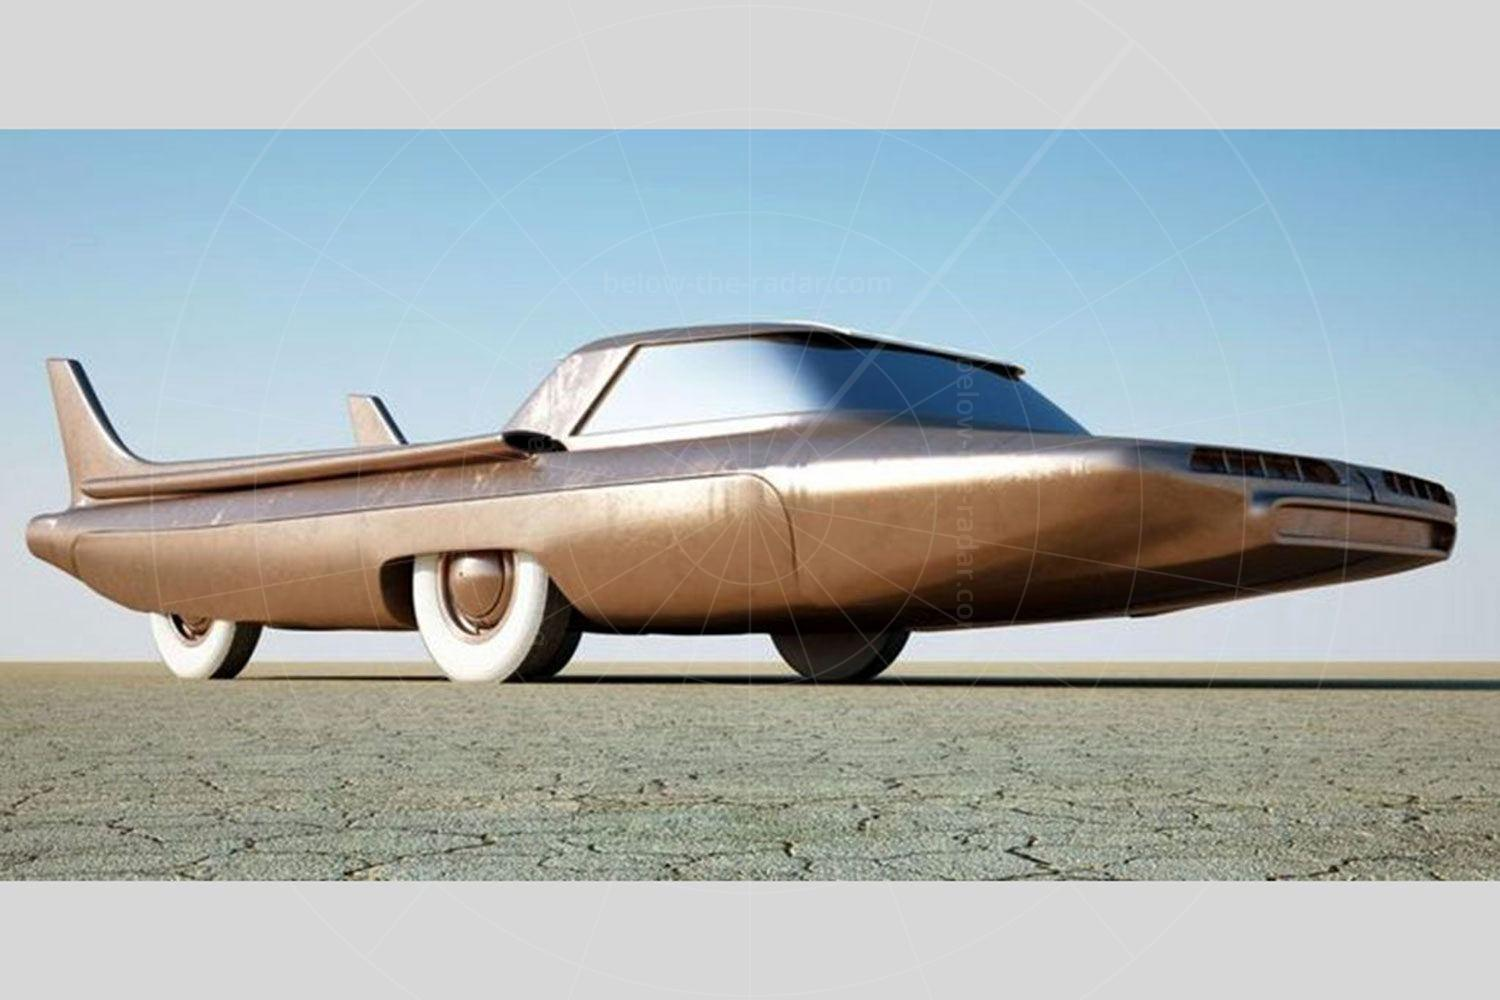 Ford Nucleon concept Pic: Ford | Ford Nucleon concept